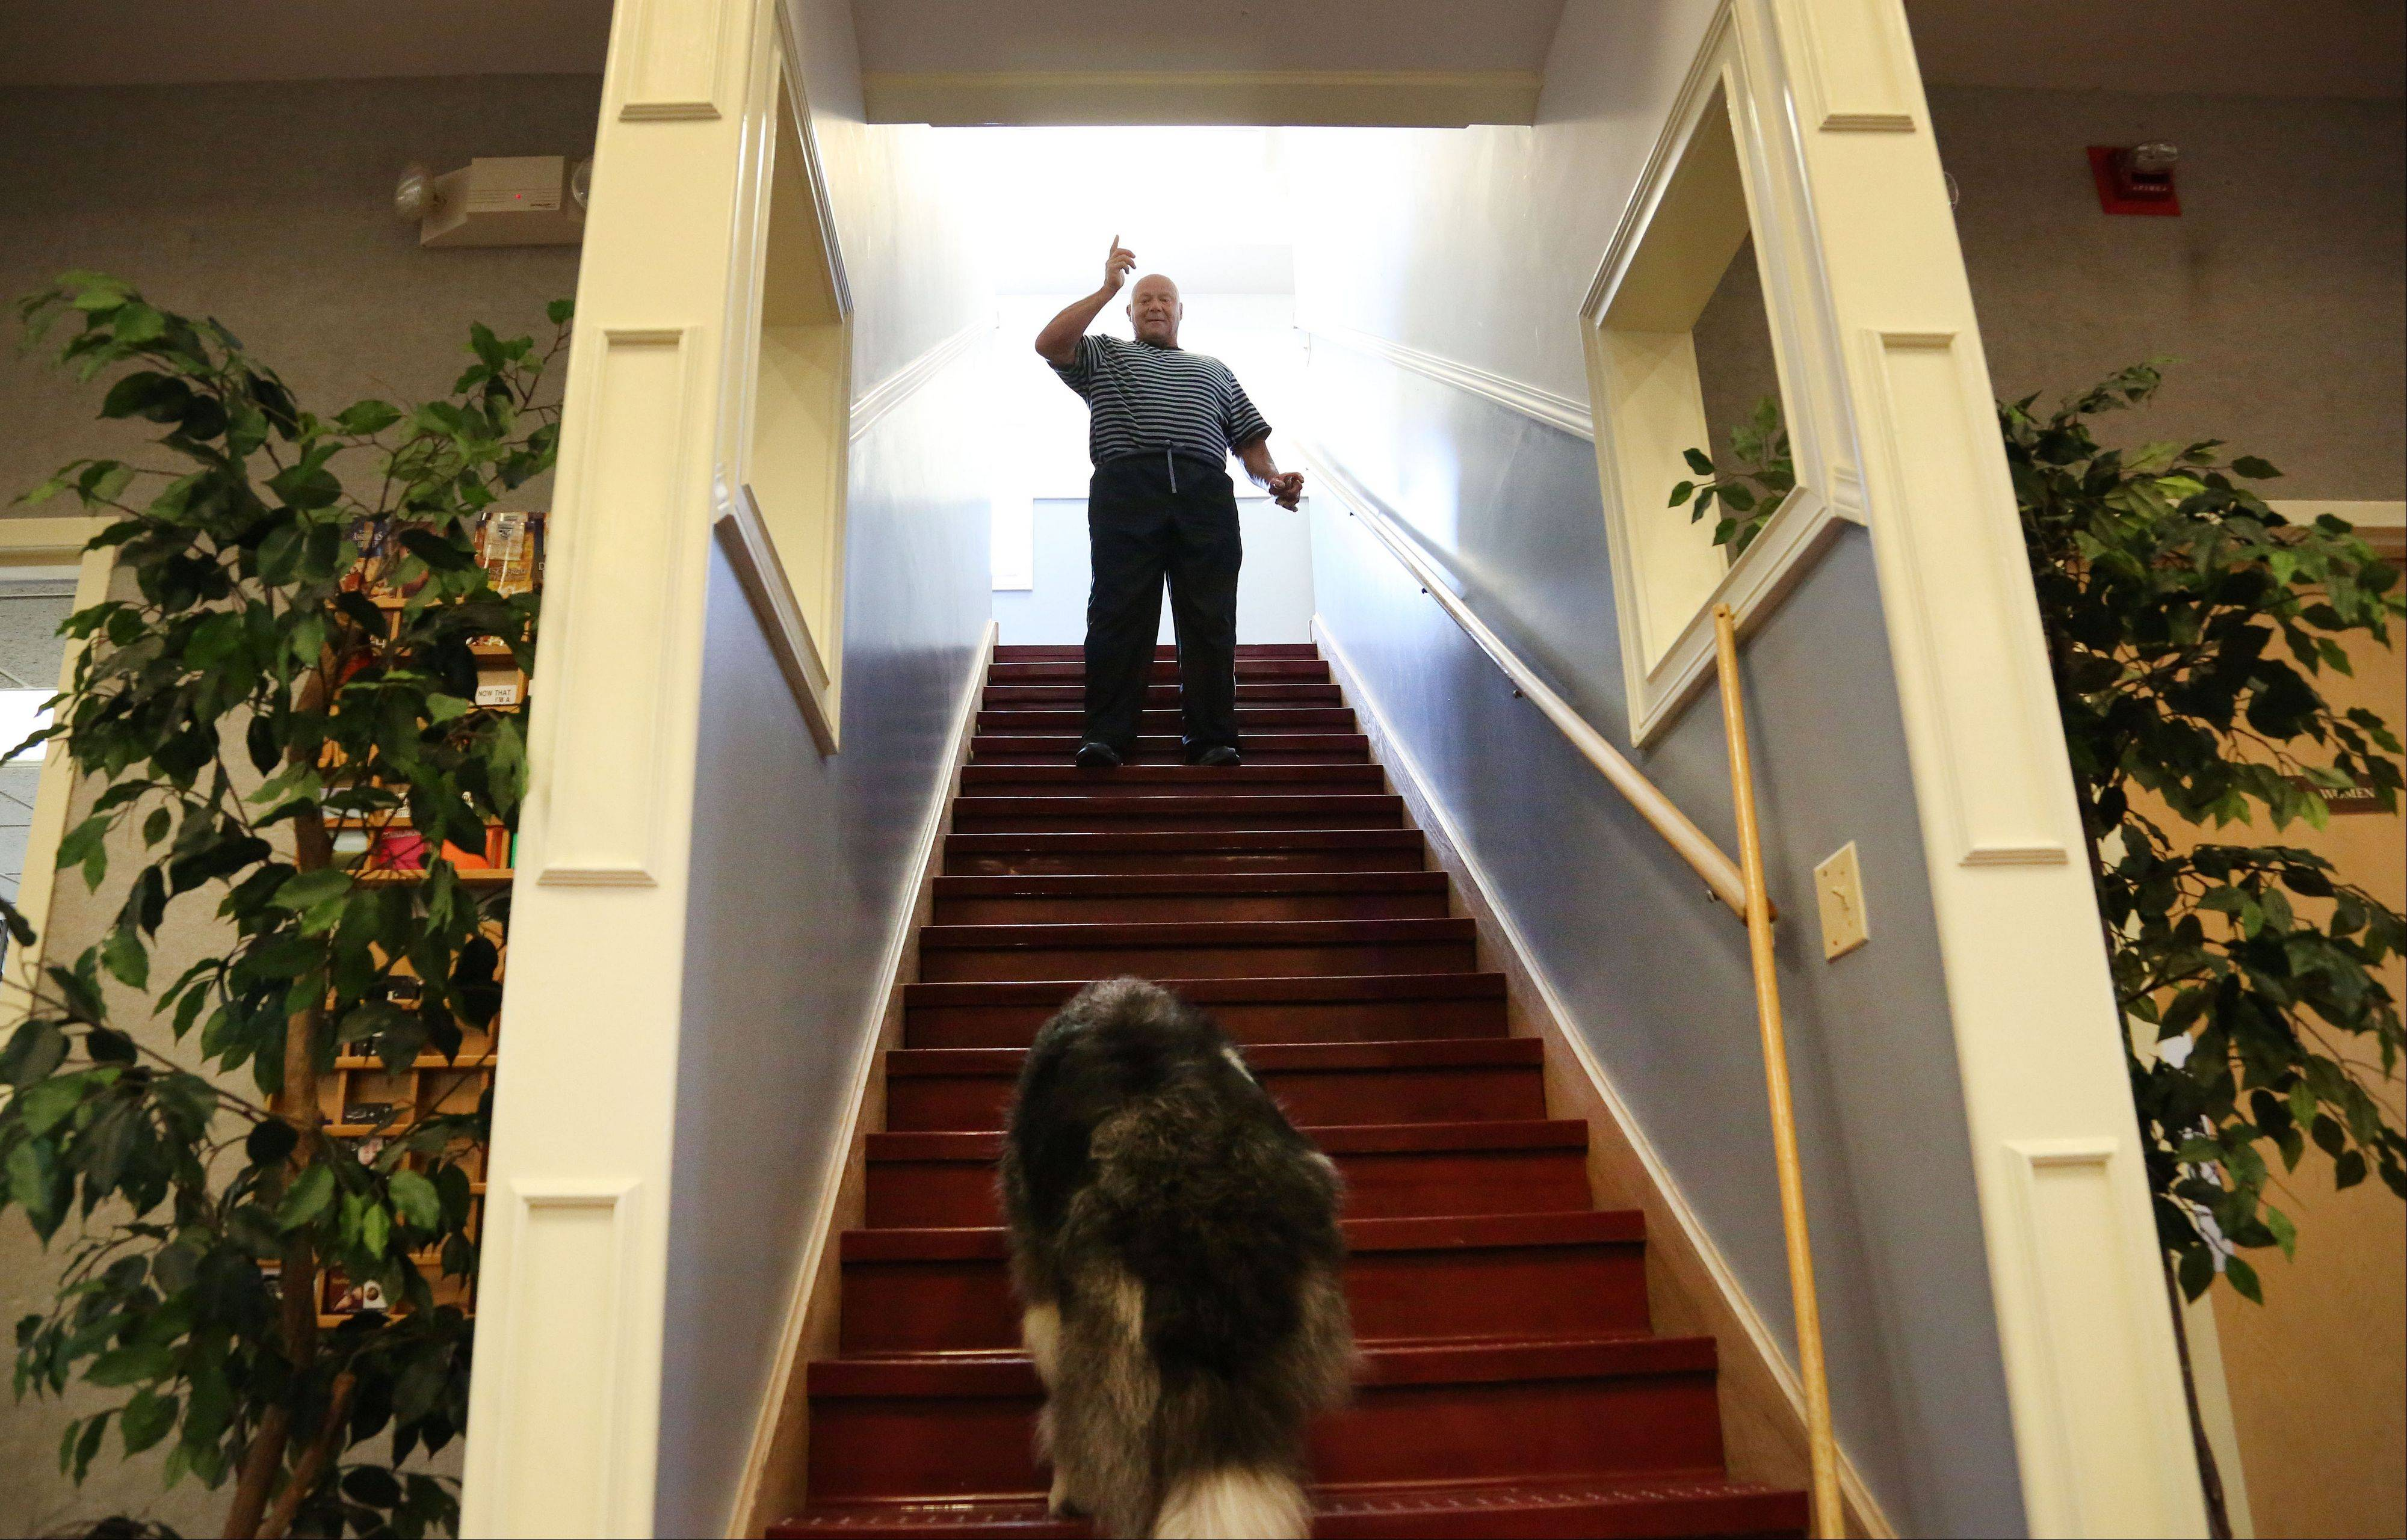 During training, Alex Rothacker guides Swee' Pea up a flight of stairs with a glass balanced on her nose.